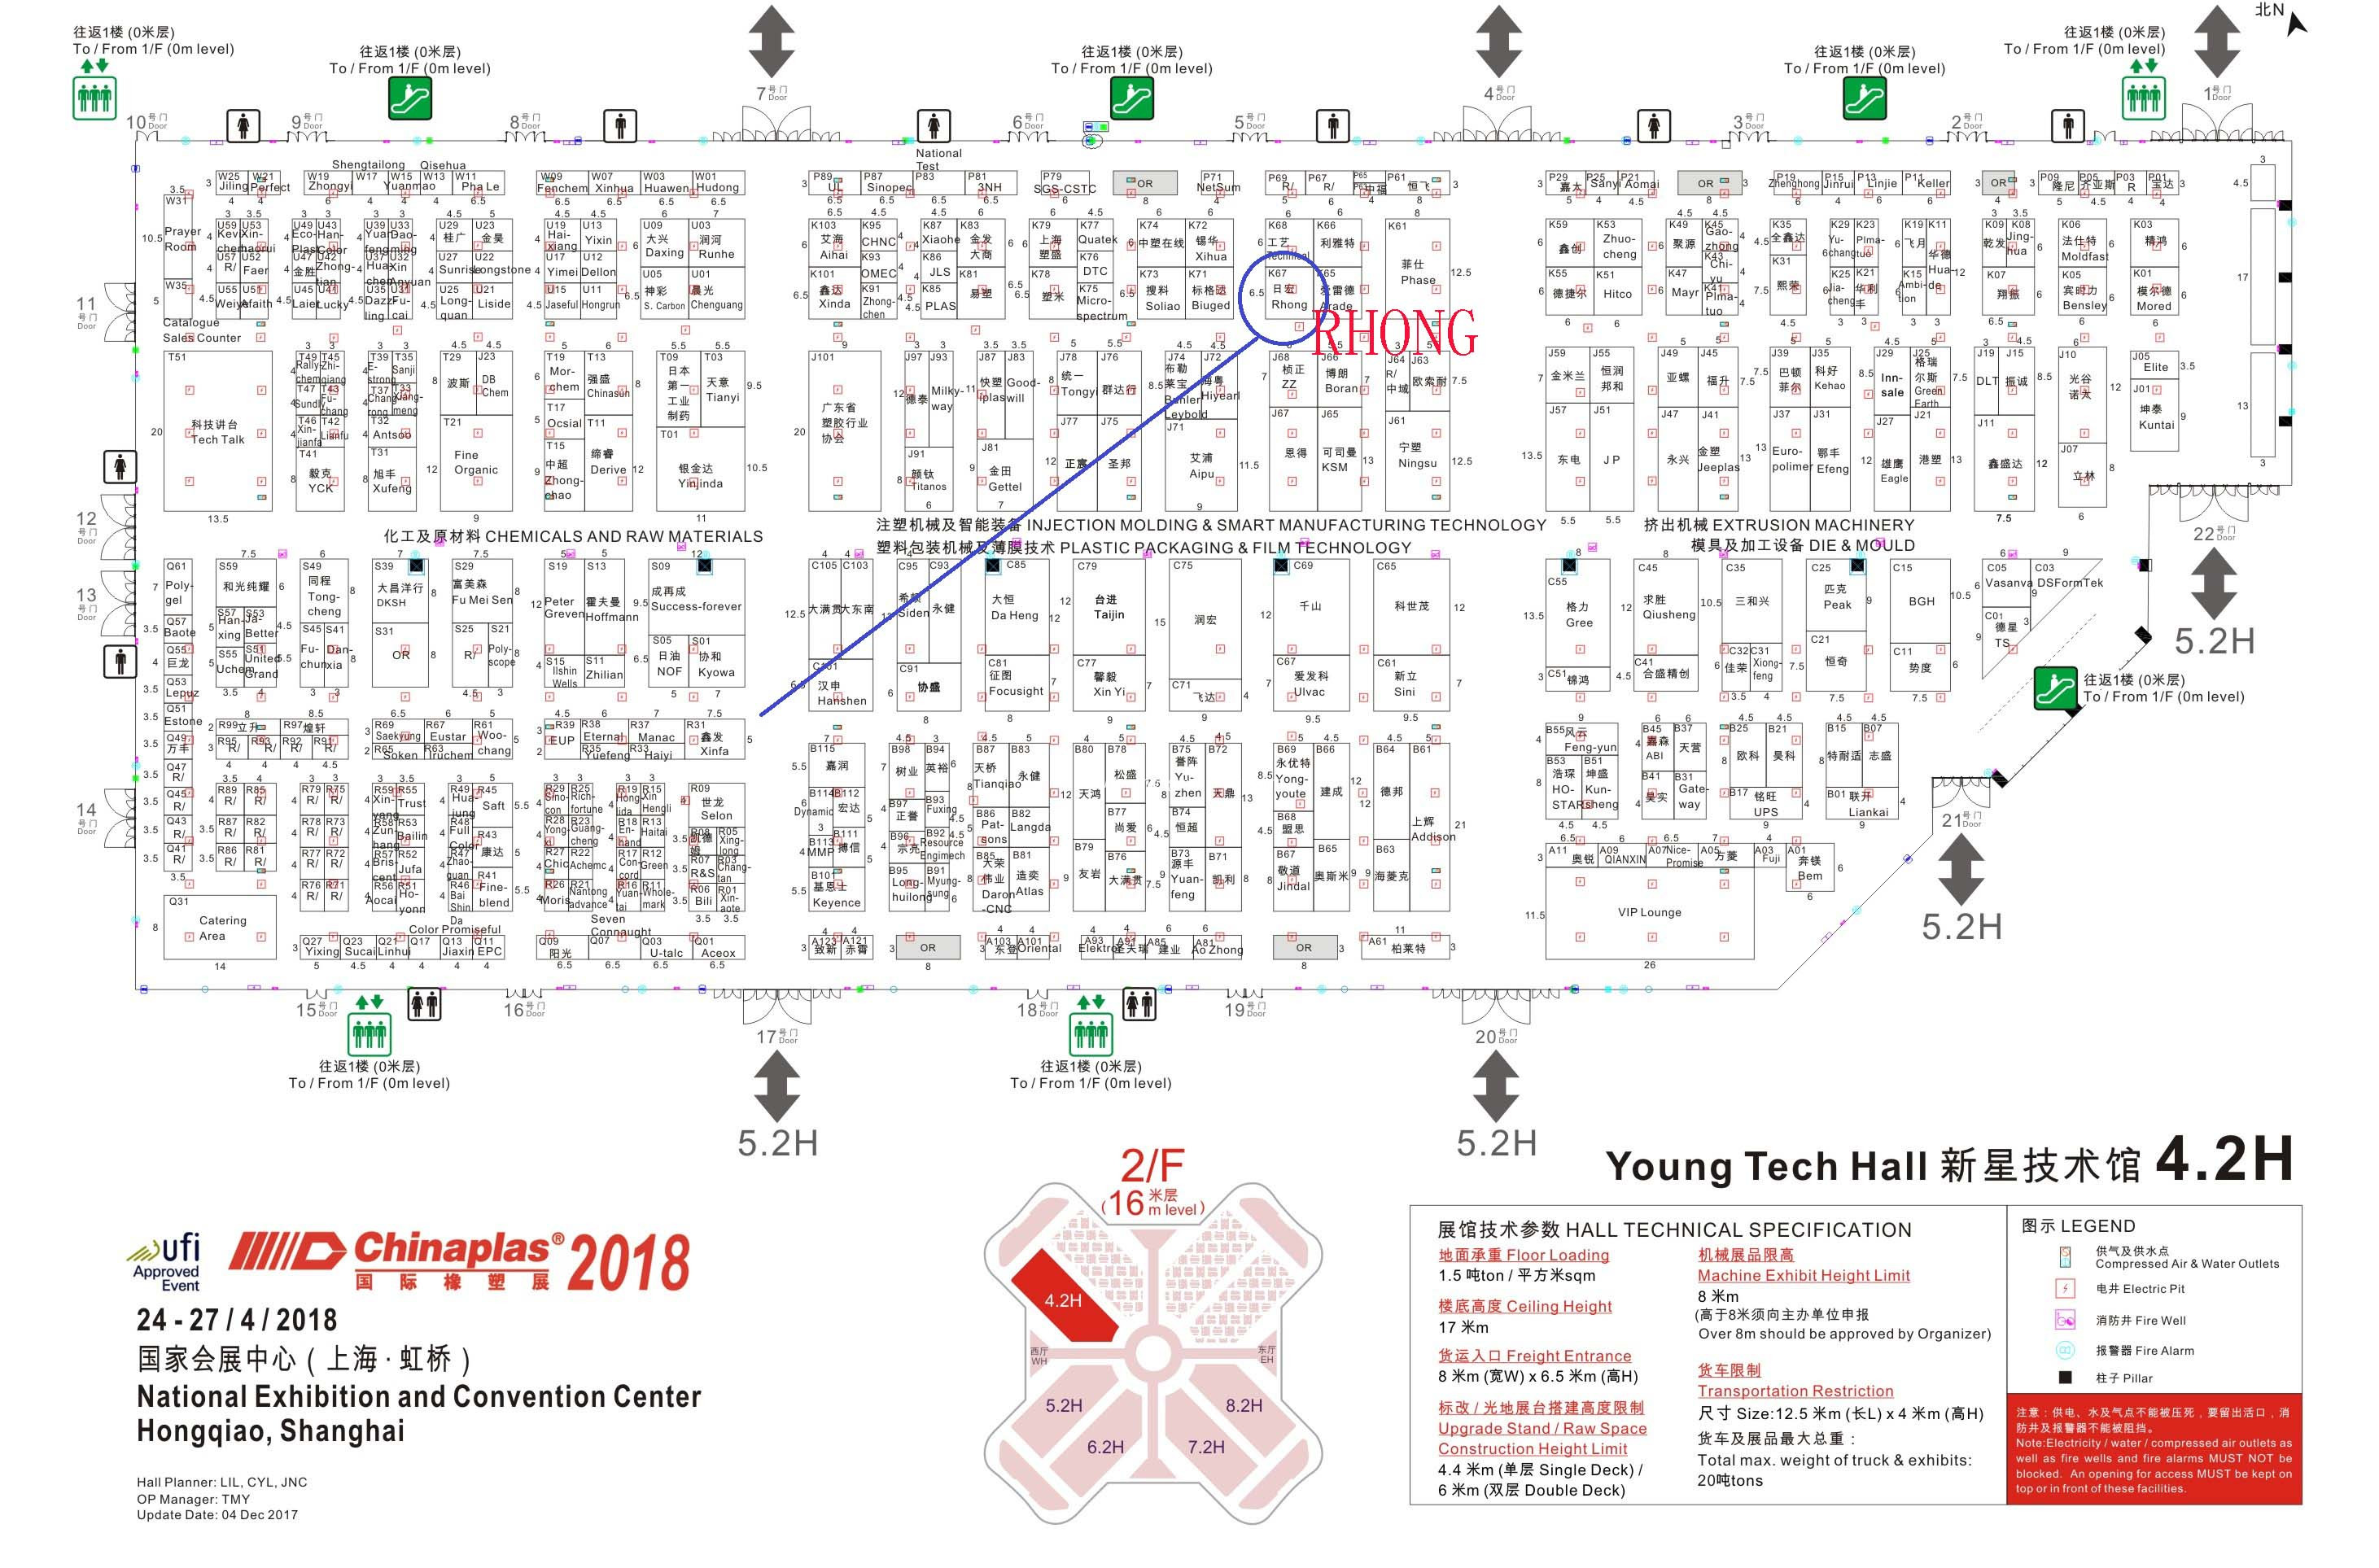 Hall 4.2 K67 from RHONG-Leya pan 1